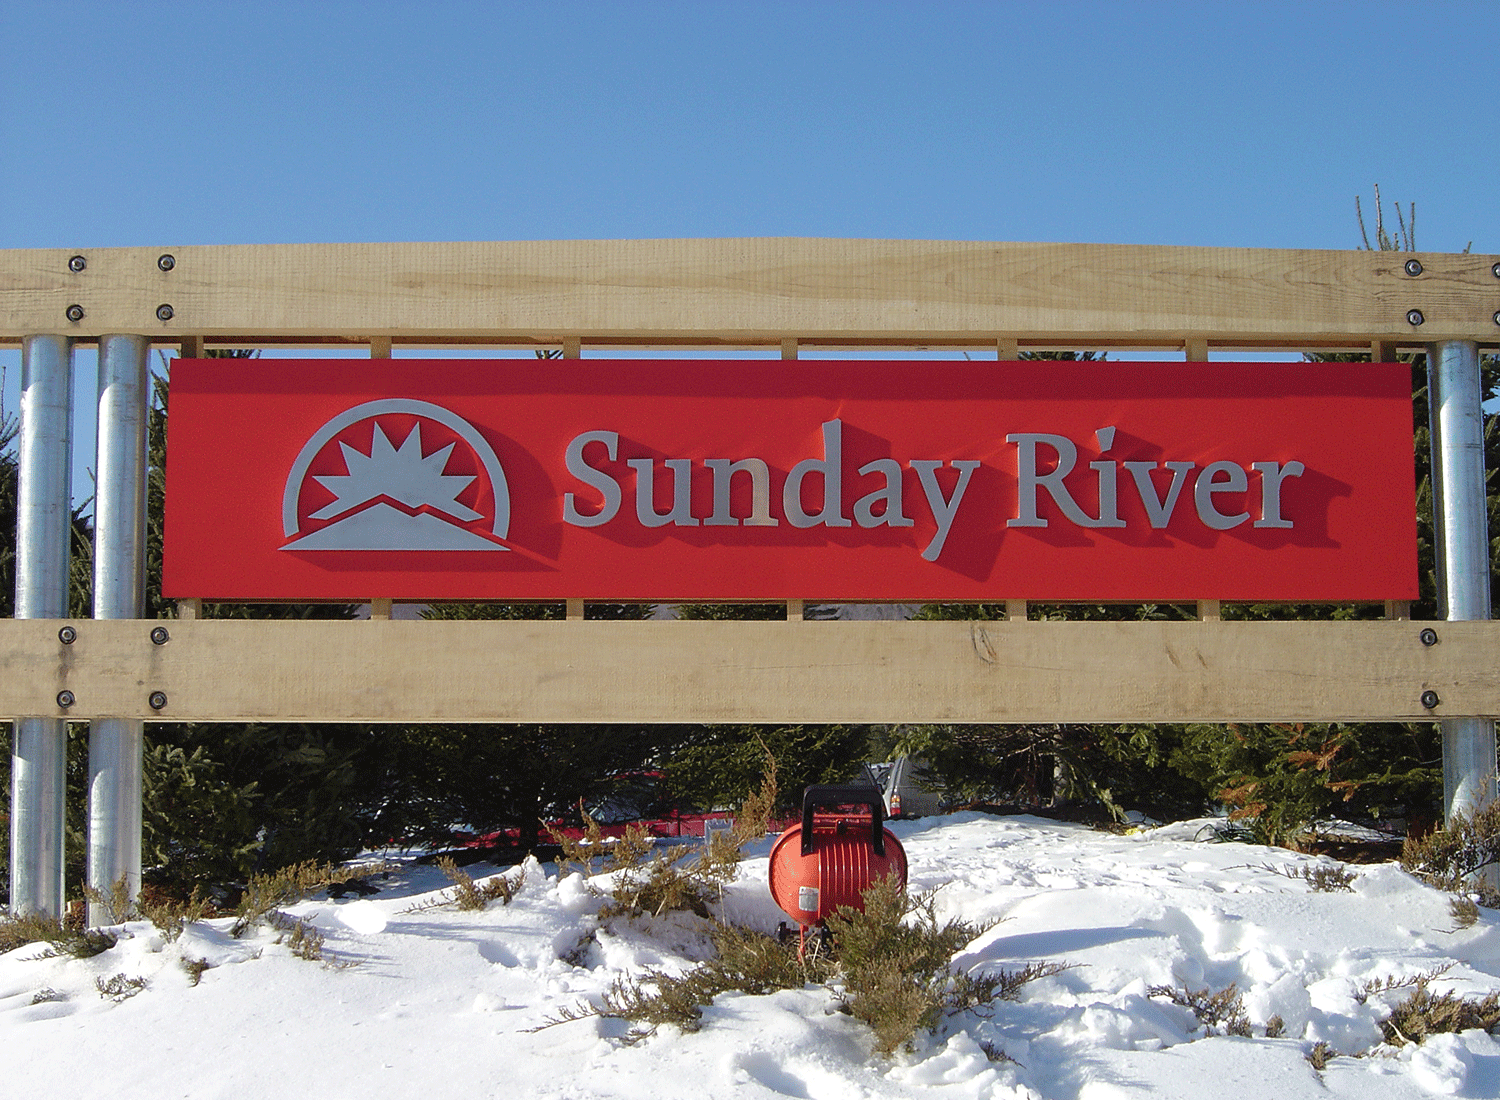 Sunday River Sign, Metal Letters